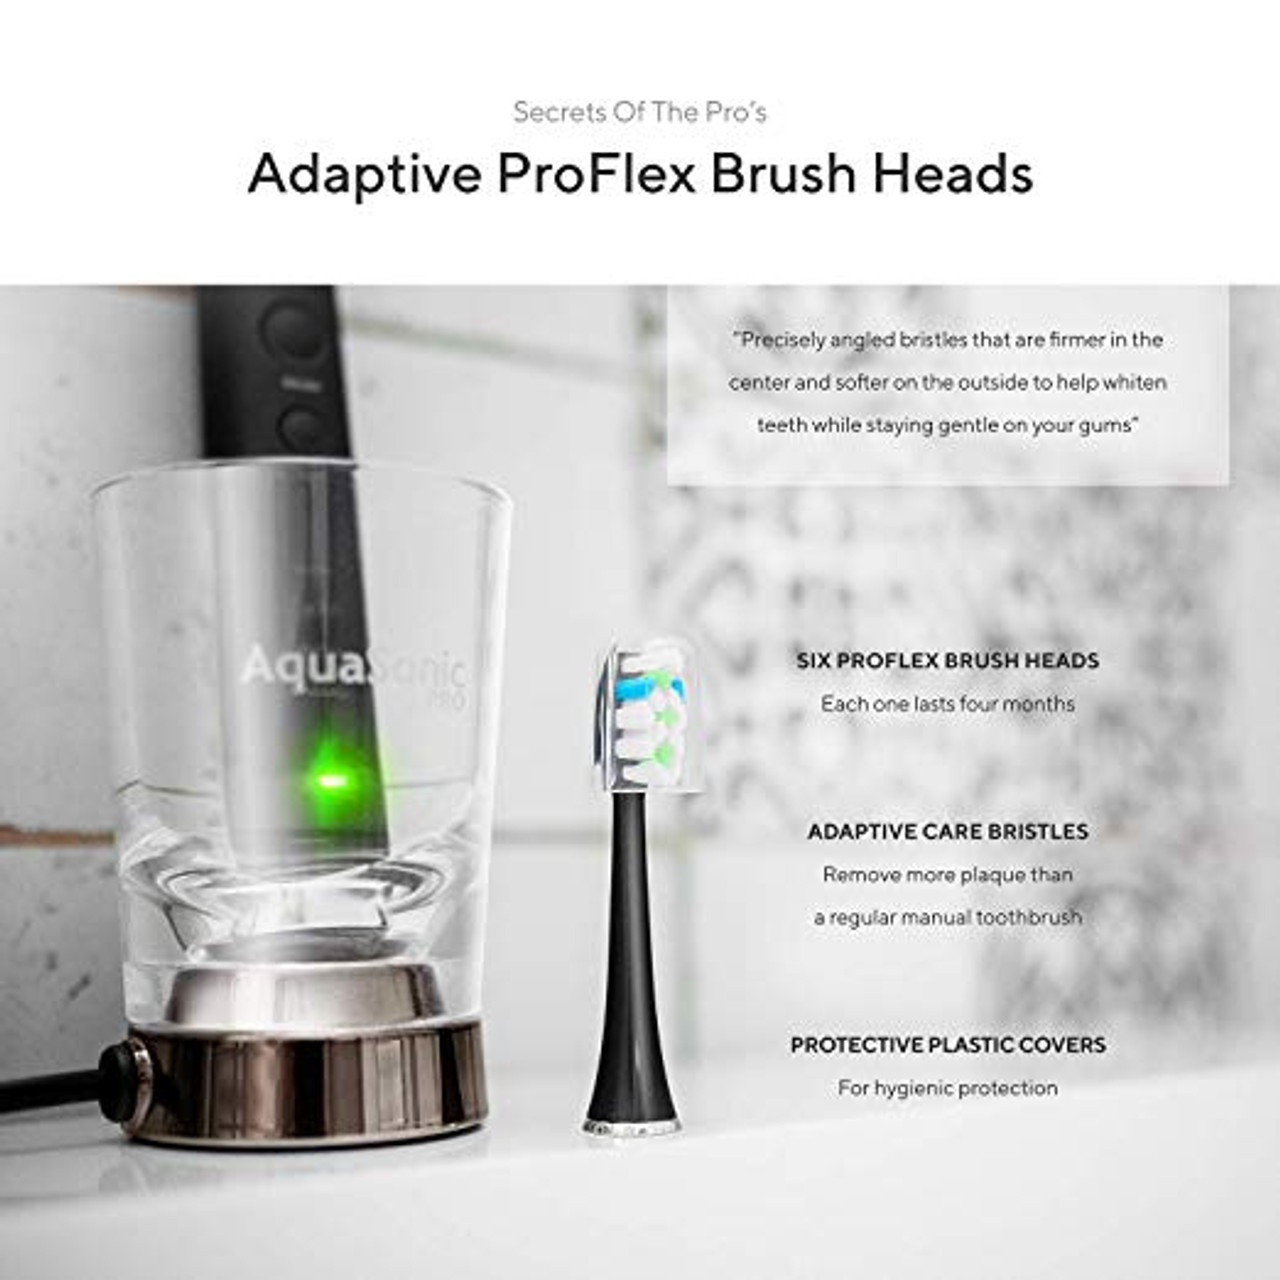 AquaSonic PDC-AQUA-PRO PRO Rechargeable Electric Toothbrush Black